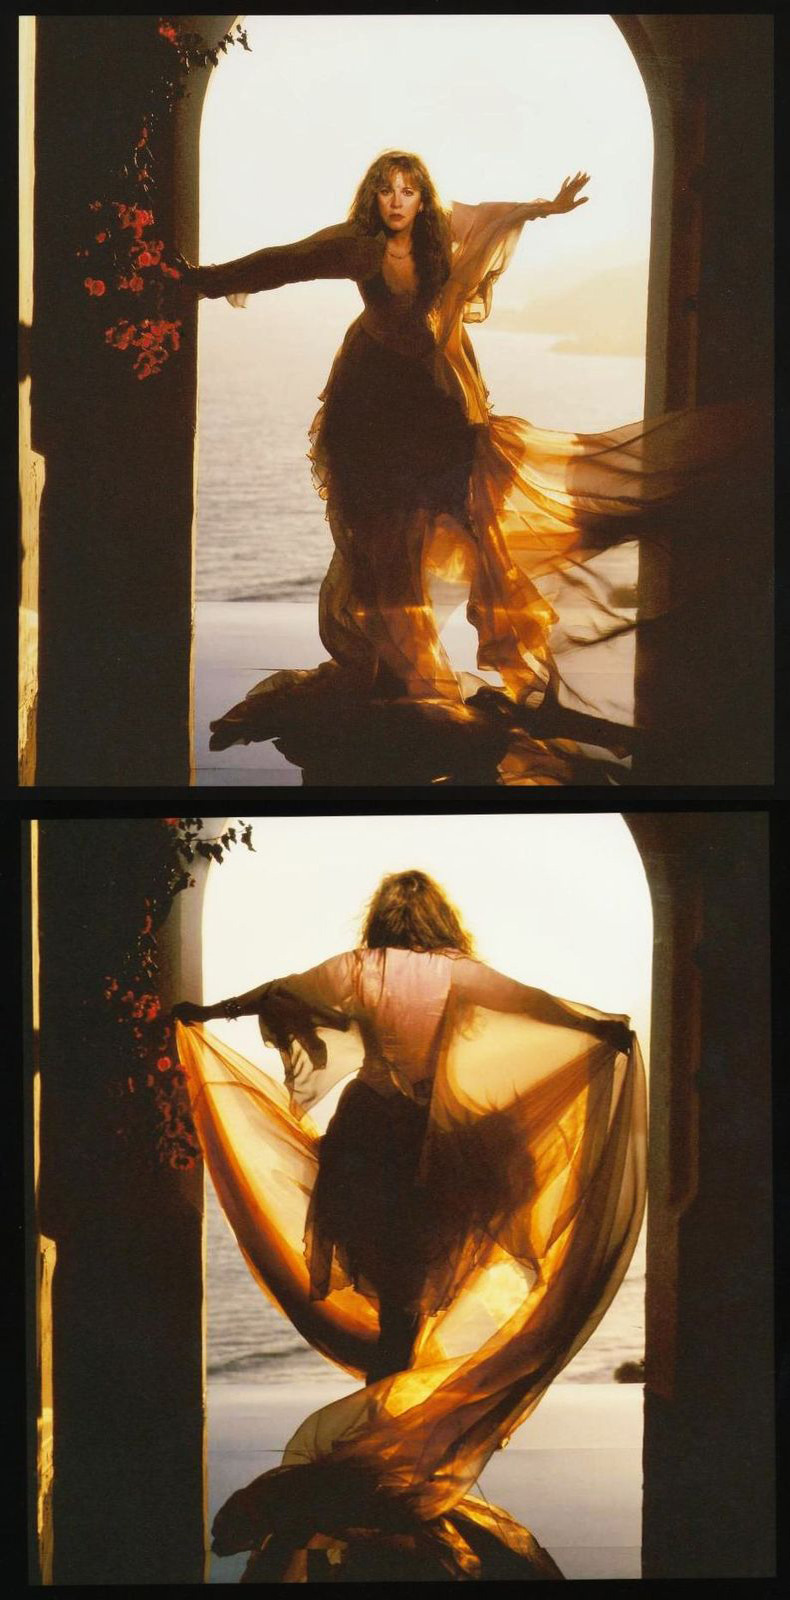 bohemea:  Stevie Nicks